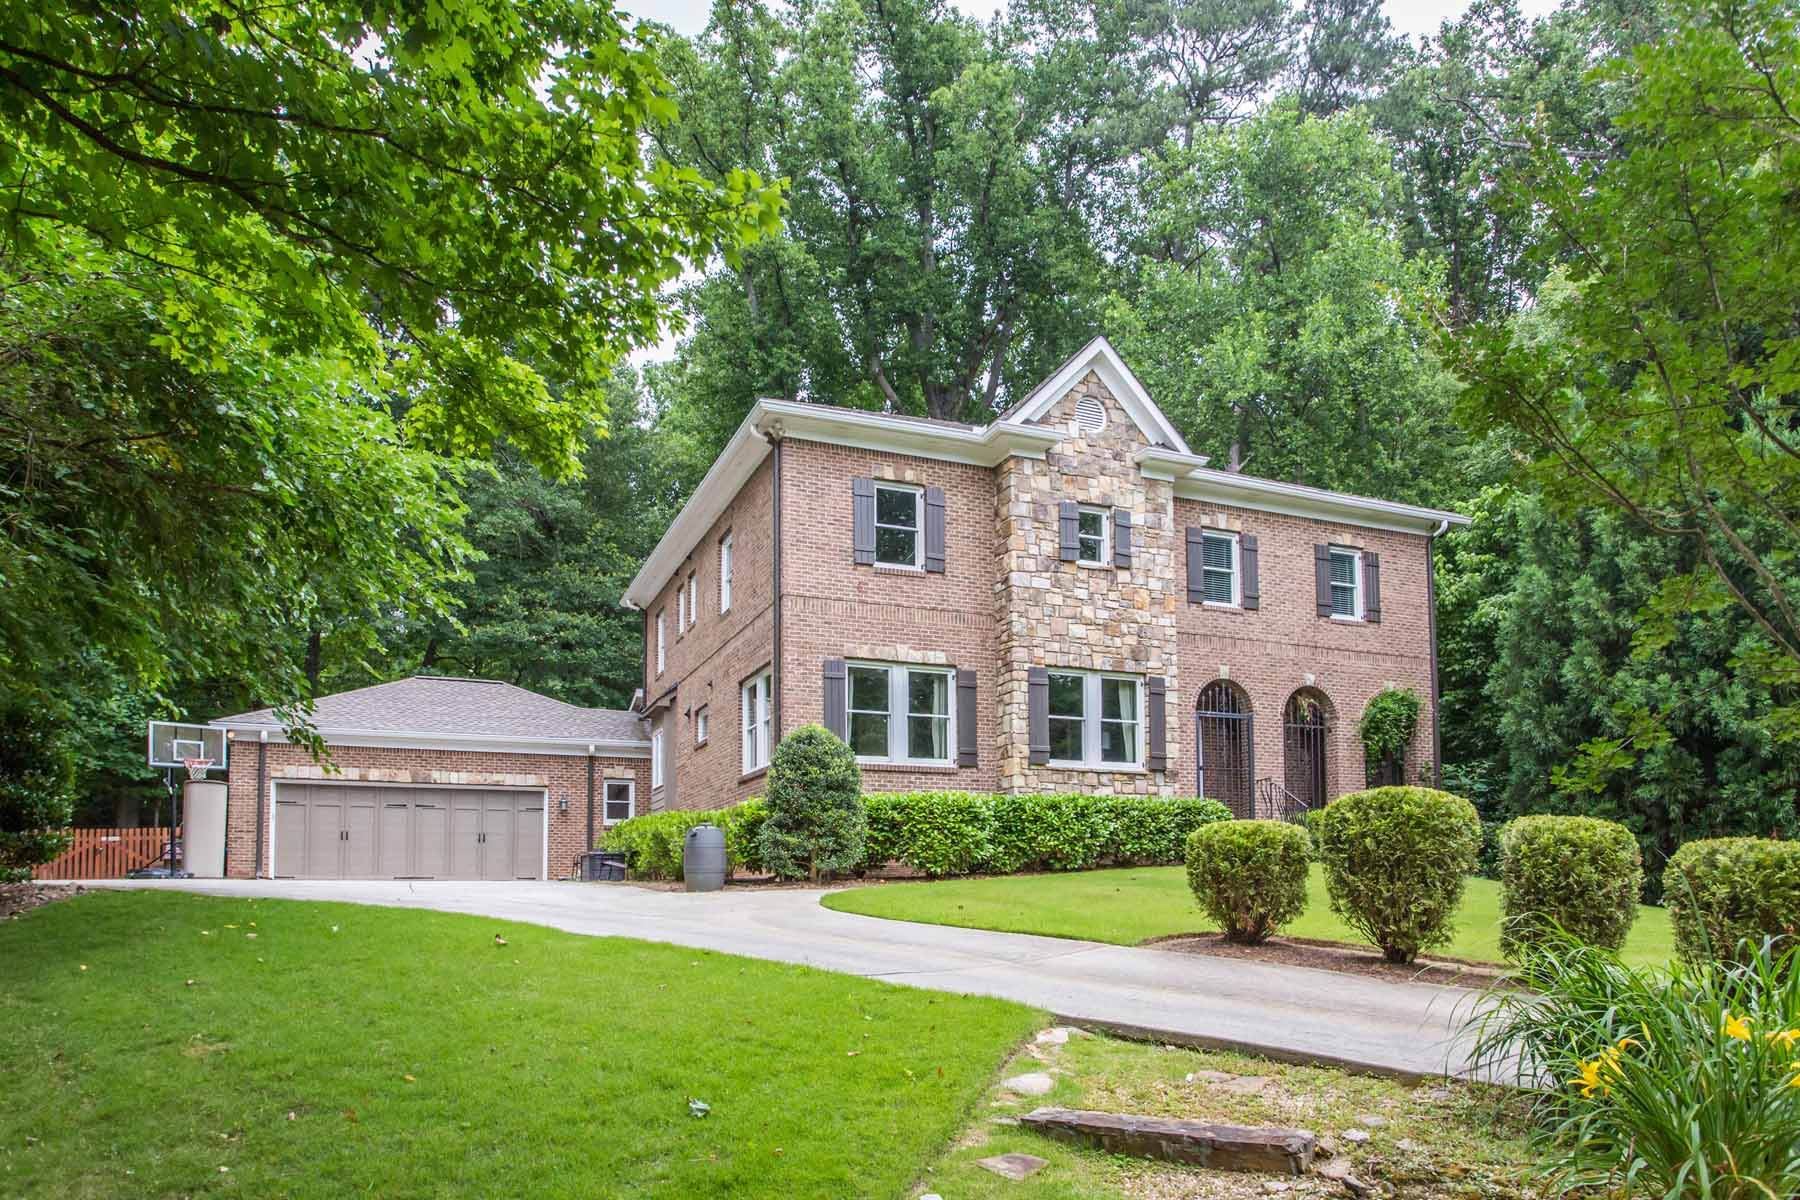 Single Family Home for Sale at Ideal Location in Durand Mill Neighborhood 1943 Grist Stone Court NE Atlanta, Georgia, 30307 United States